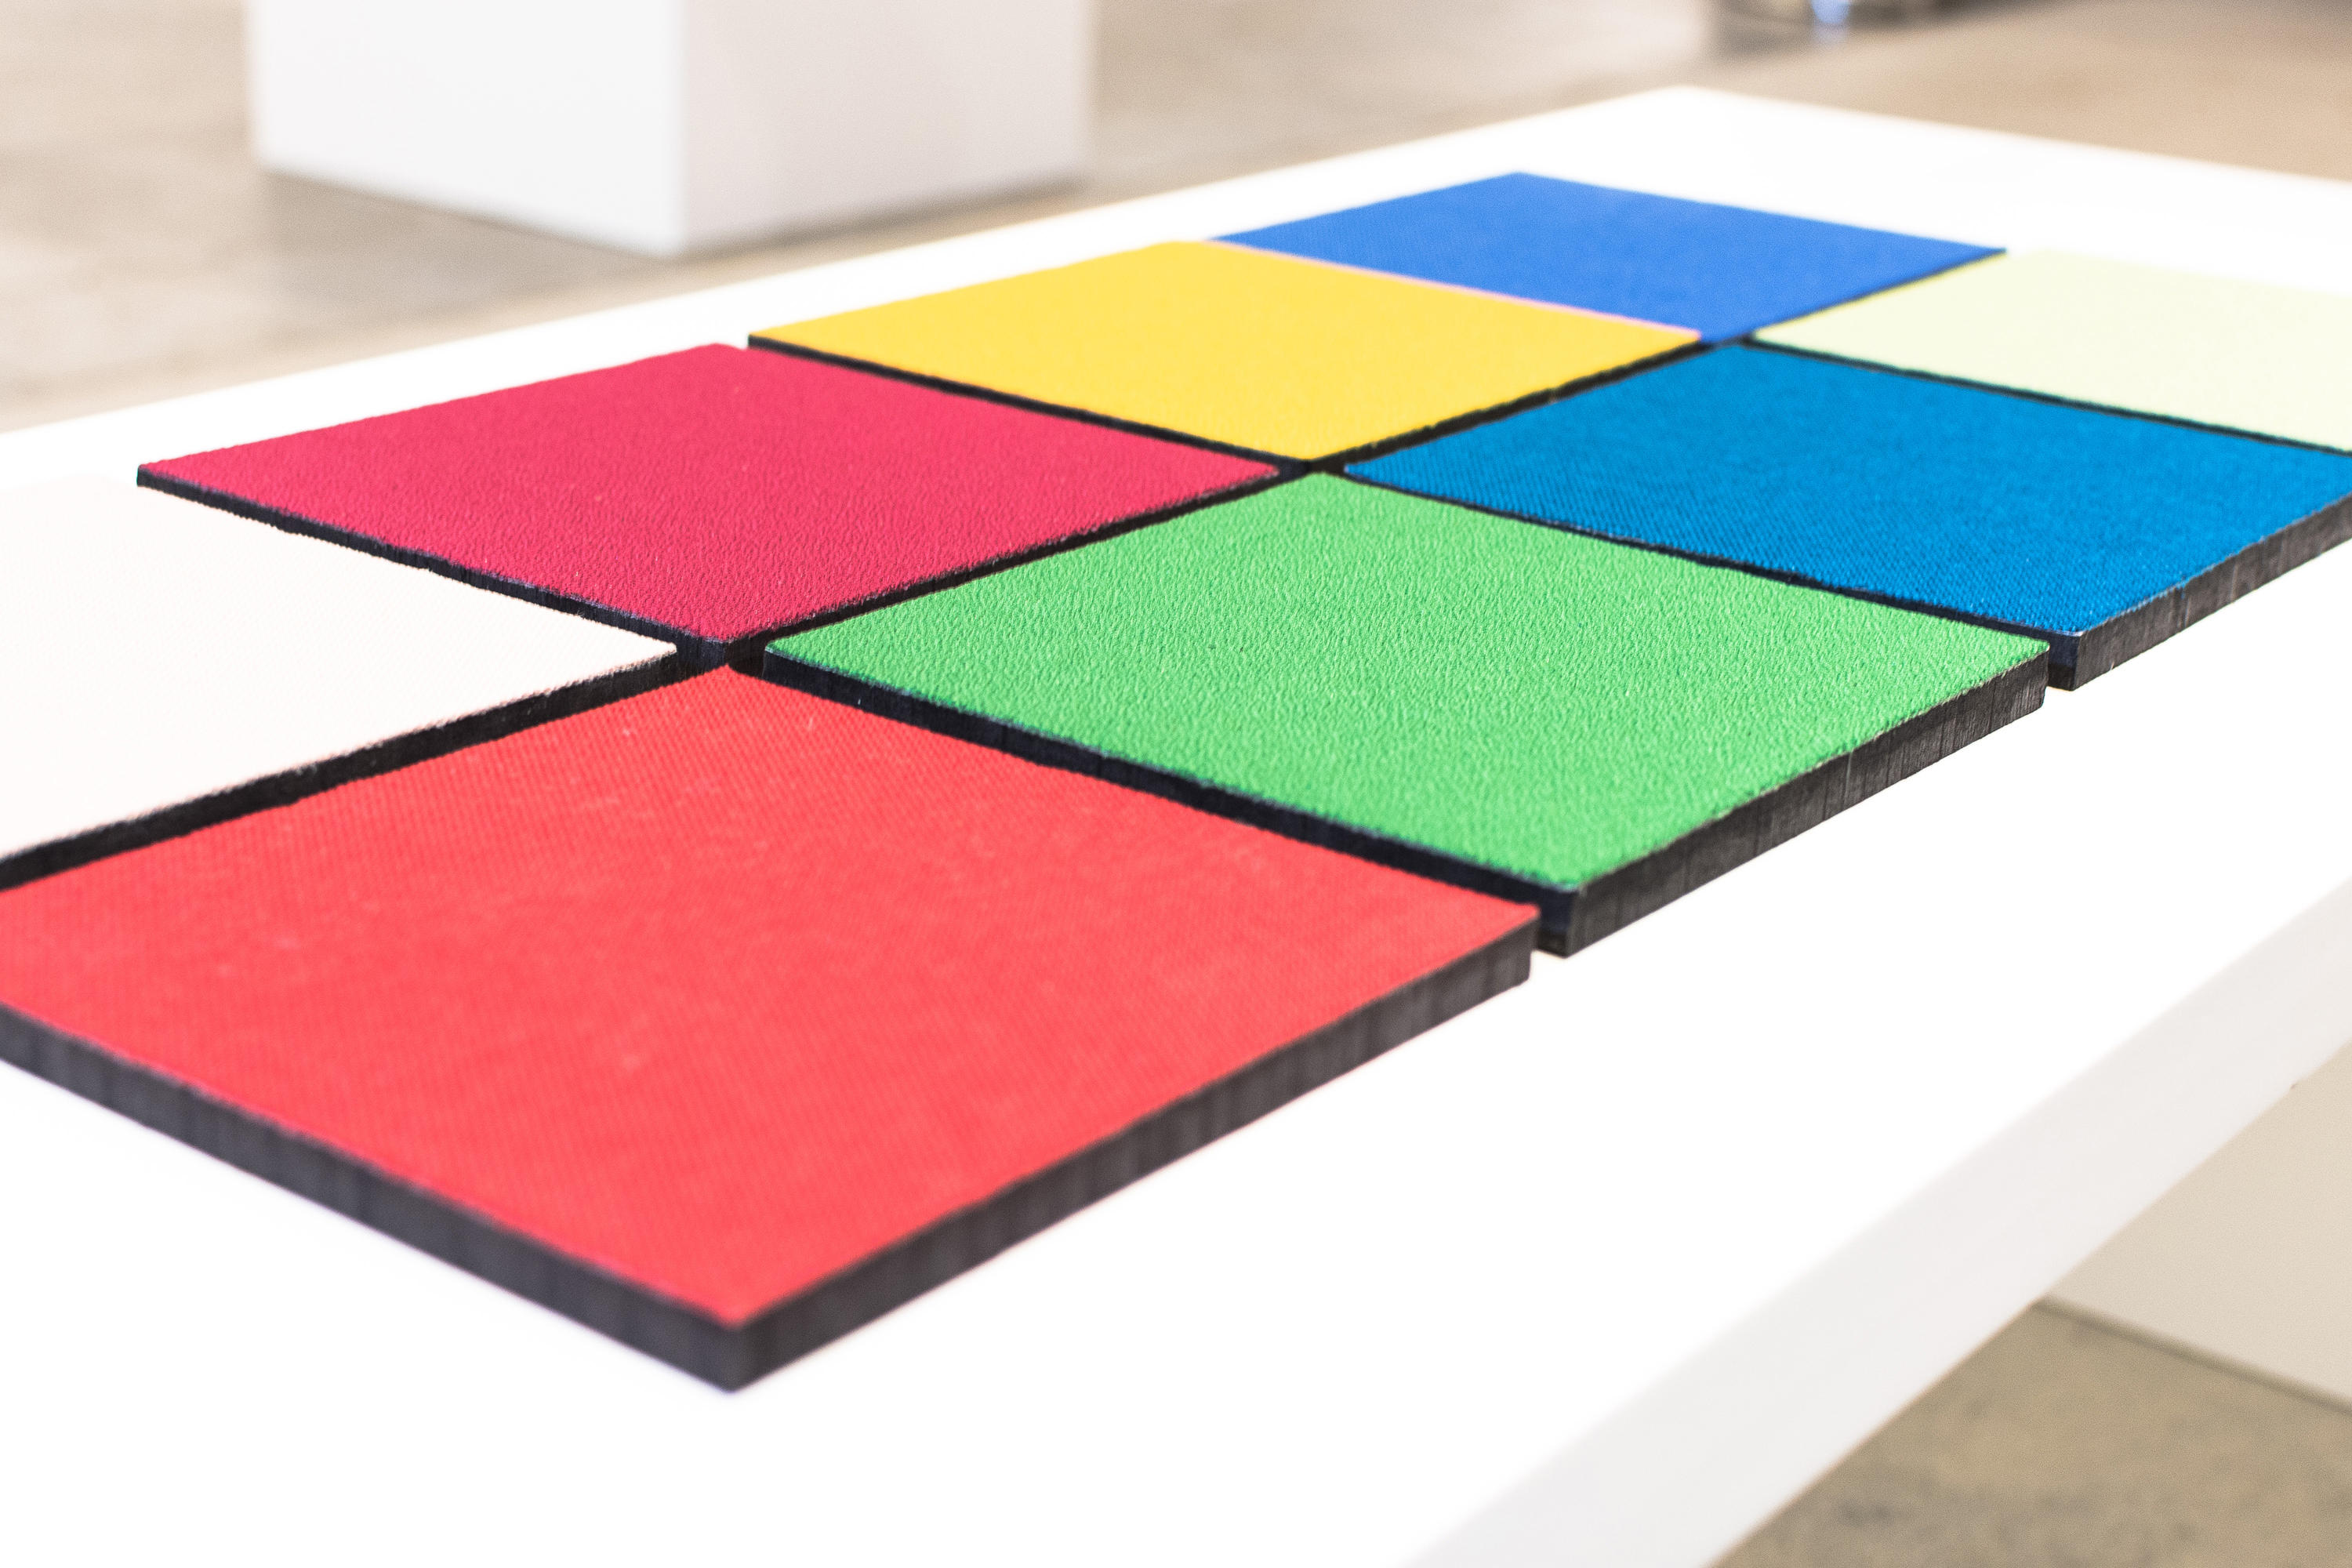 Acoustic Tiles Pur12 Sound Absorbing Wall Systems From Aos